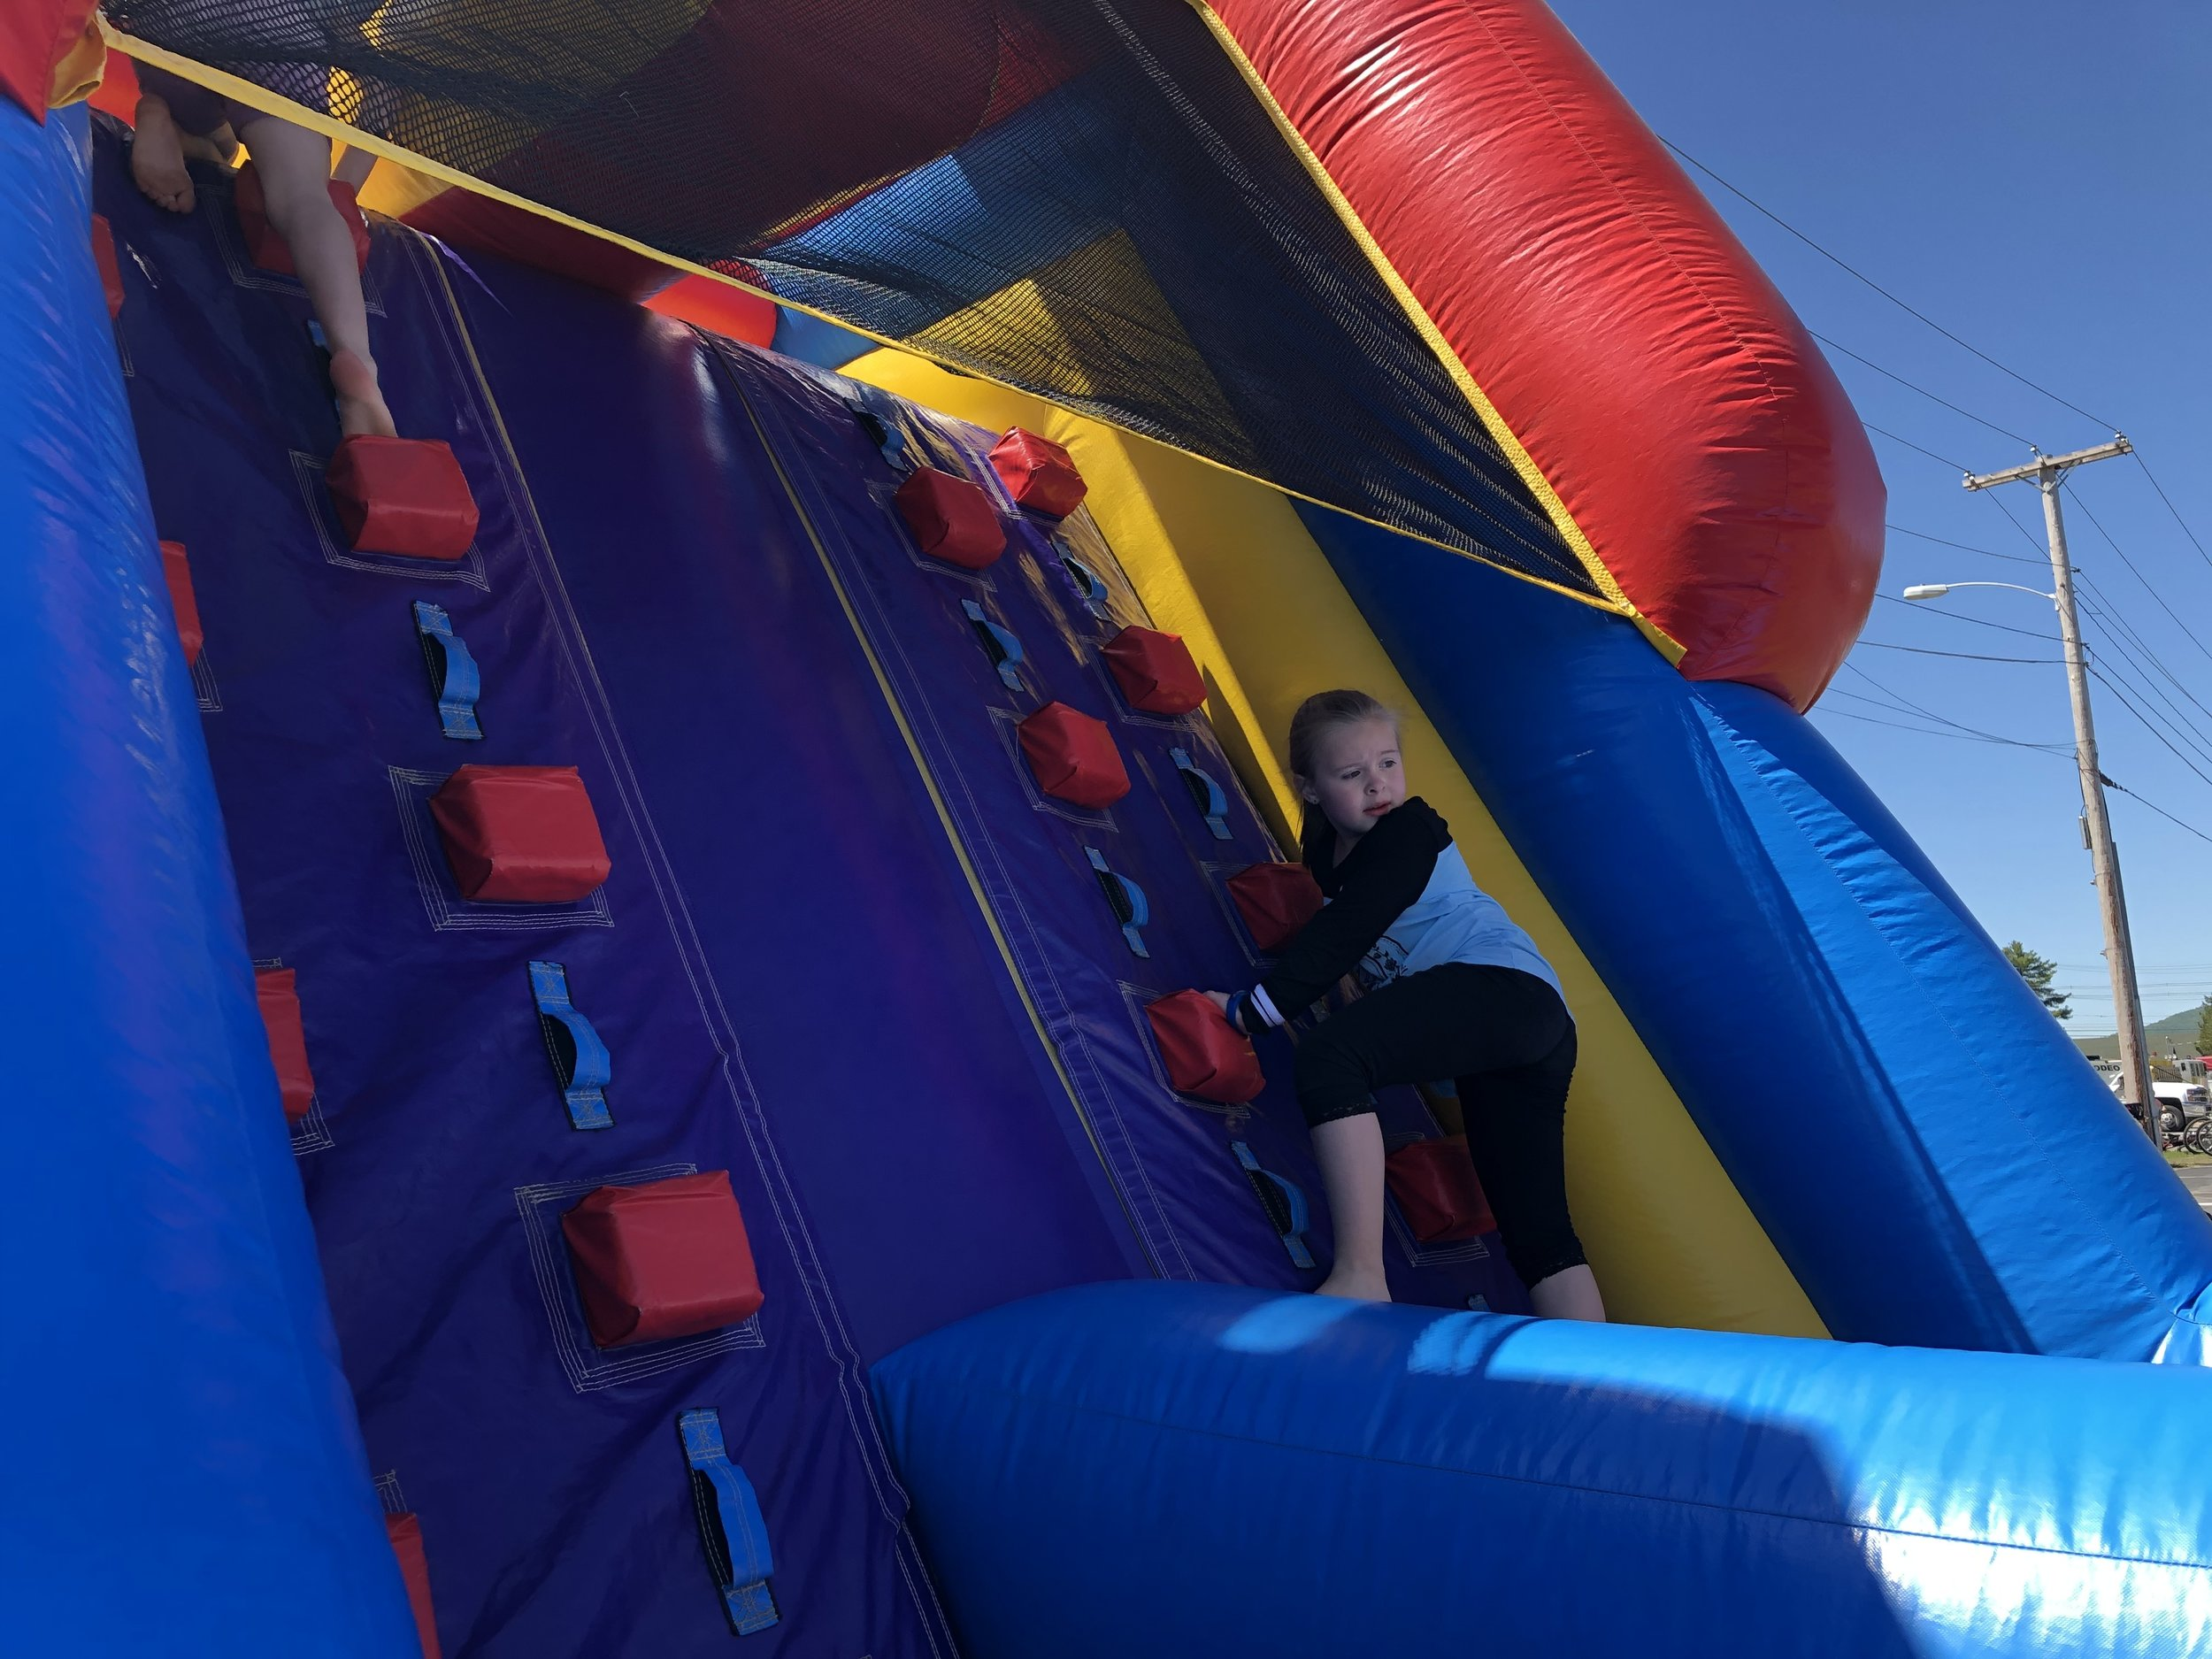 Fright was on the face of this young climber in the new obstacle course at the bike rodeo.